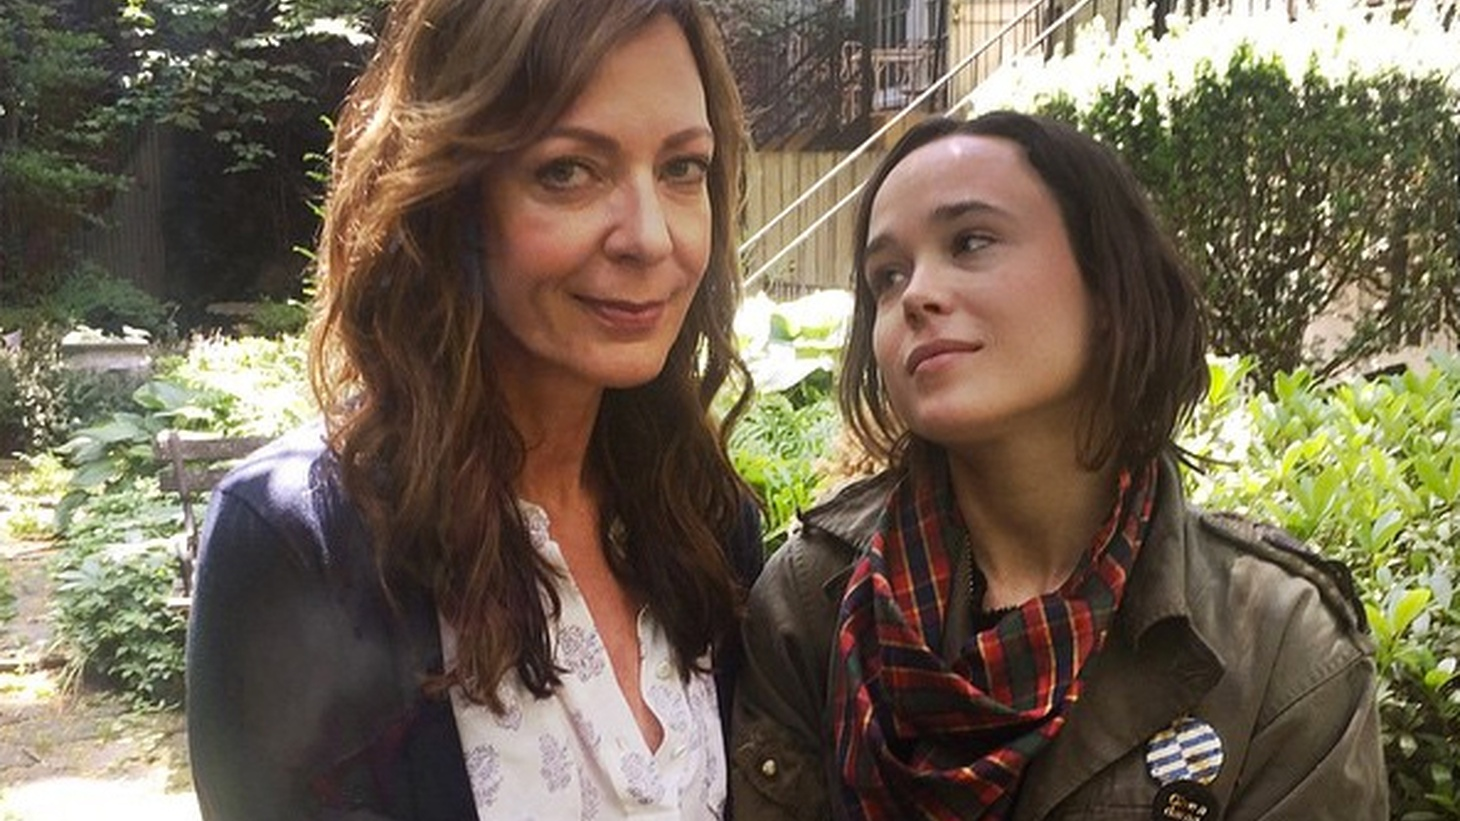 Host Madeleine Brand is at her very first Sundance Film Festival this week in Utah. Today she talks to the director of Tallulah, a film about the trials of motherhood starring Ellen Page and Allison Janney.